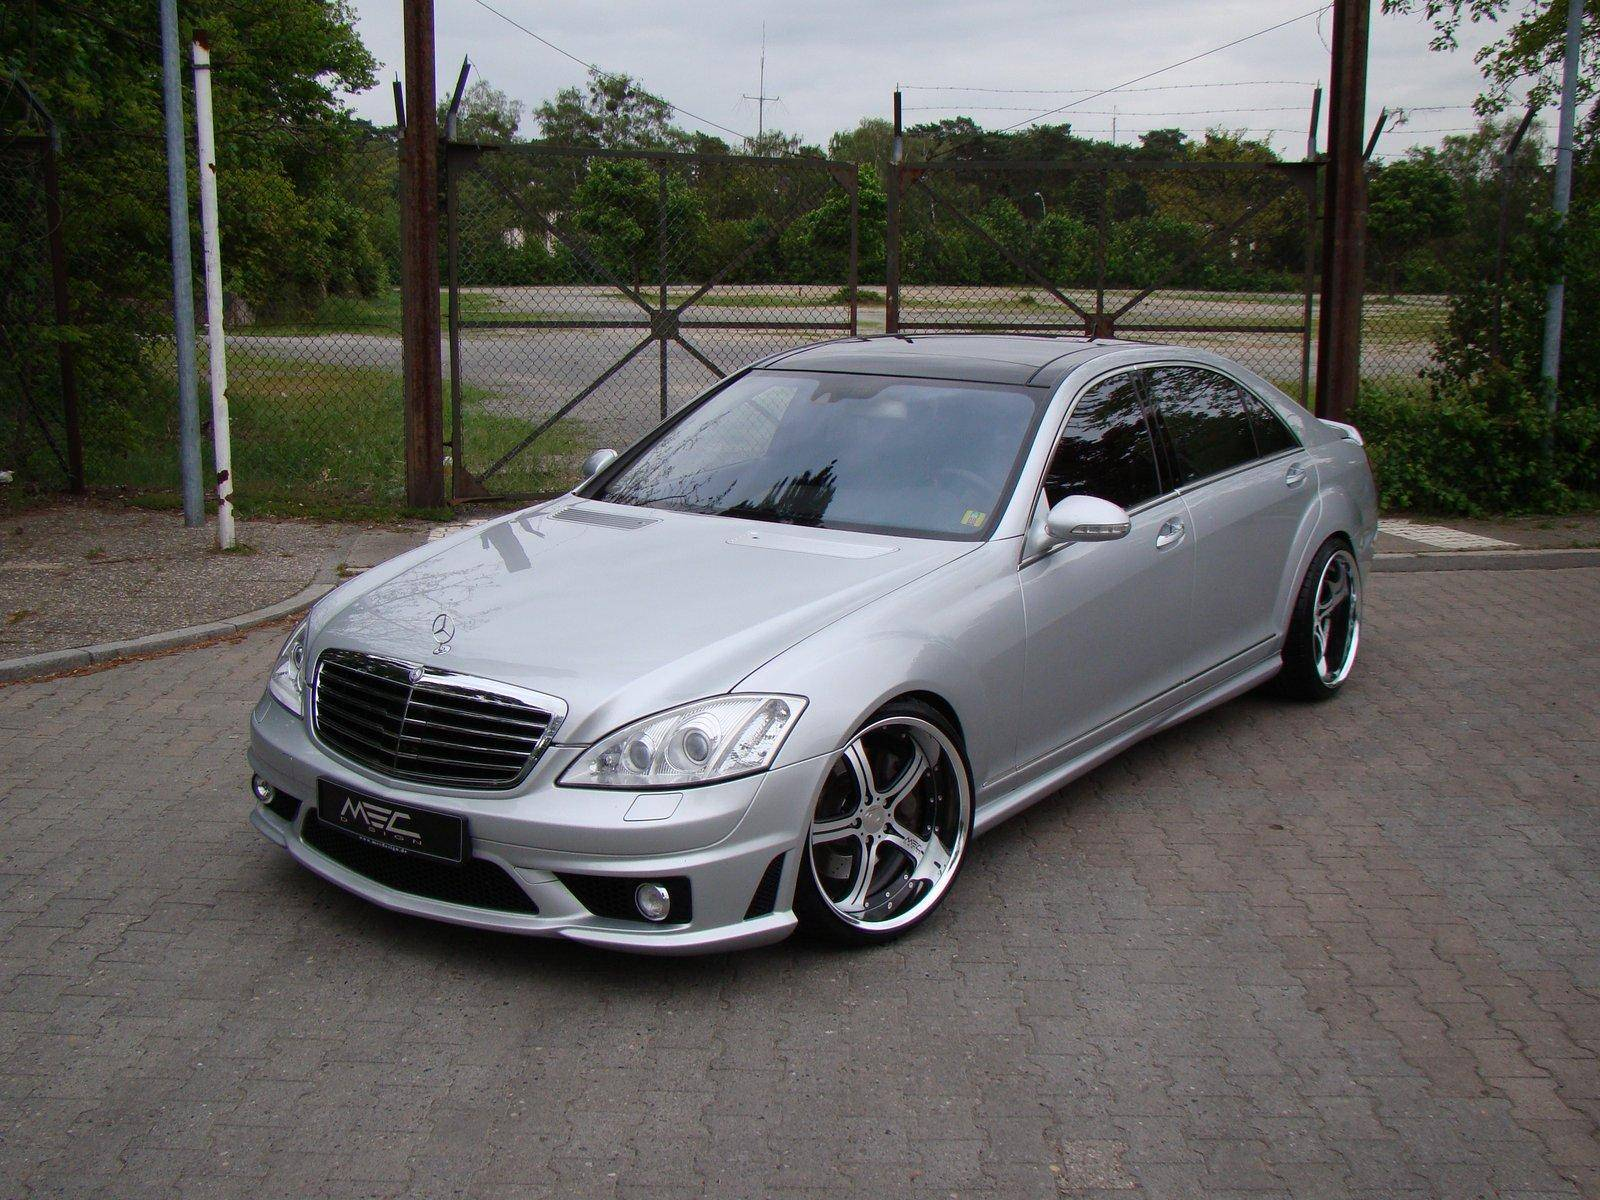 2008 Mercedes Benz S65 AMG Base 4dr Sedan 5 spd SPEEDSHIFT w OD